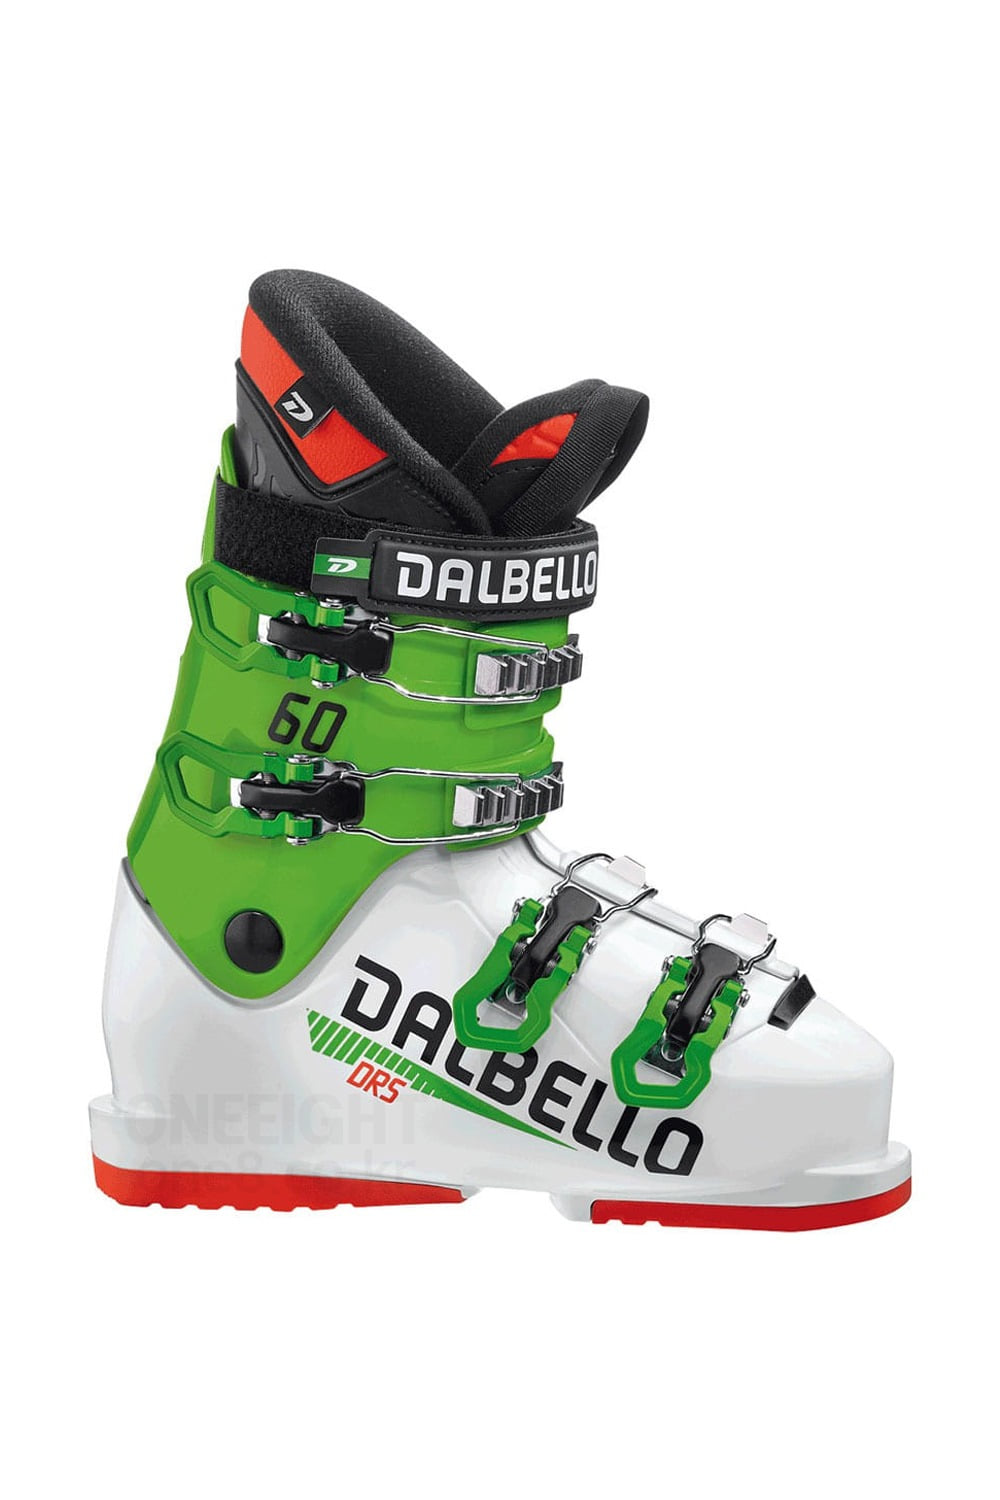 달벨로 부츠 디알에스 60 1920 DALBELLO DRS 60(230-265)WHITE/RACE GREEN_B5DB903WE